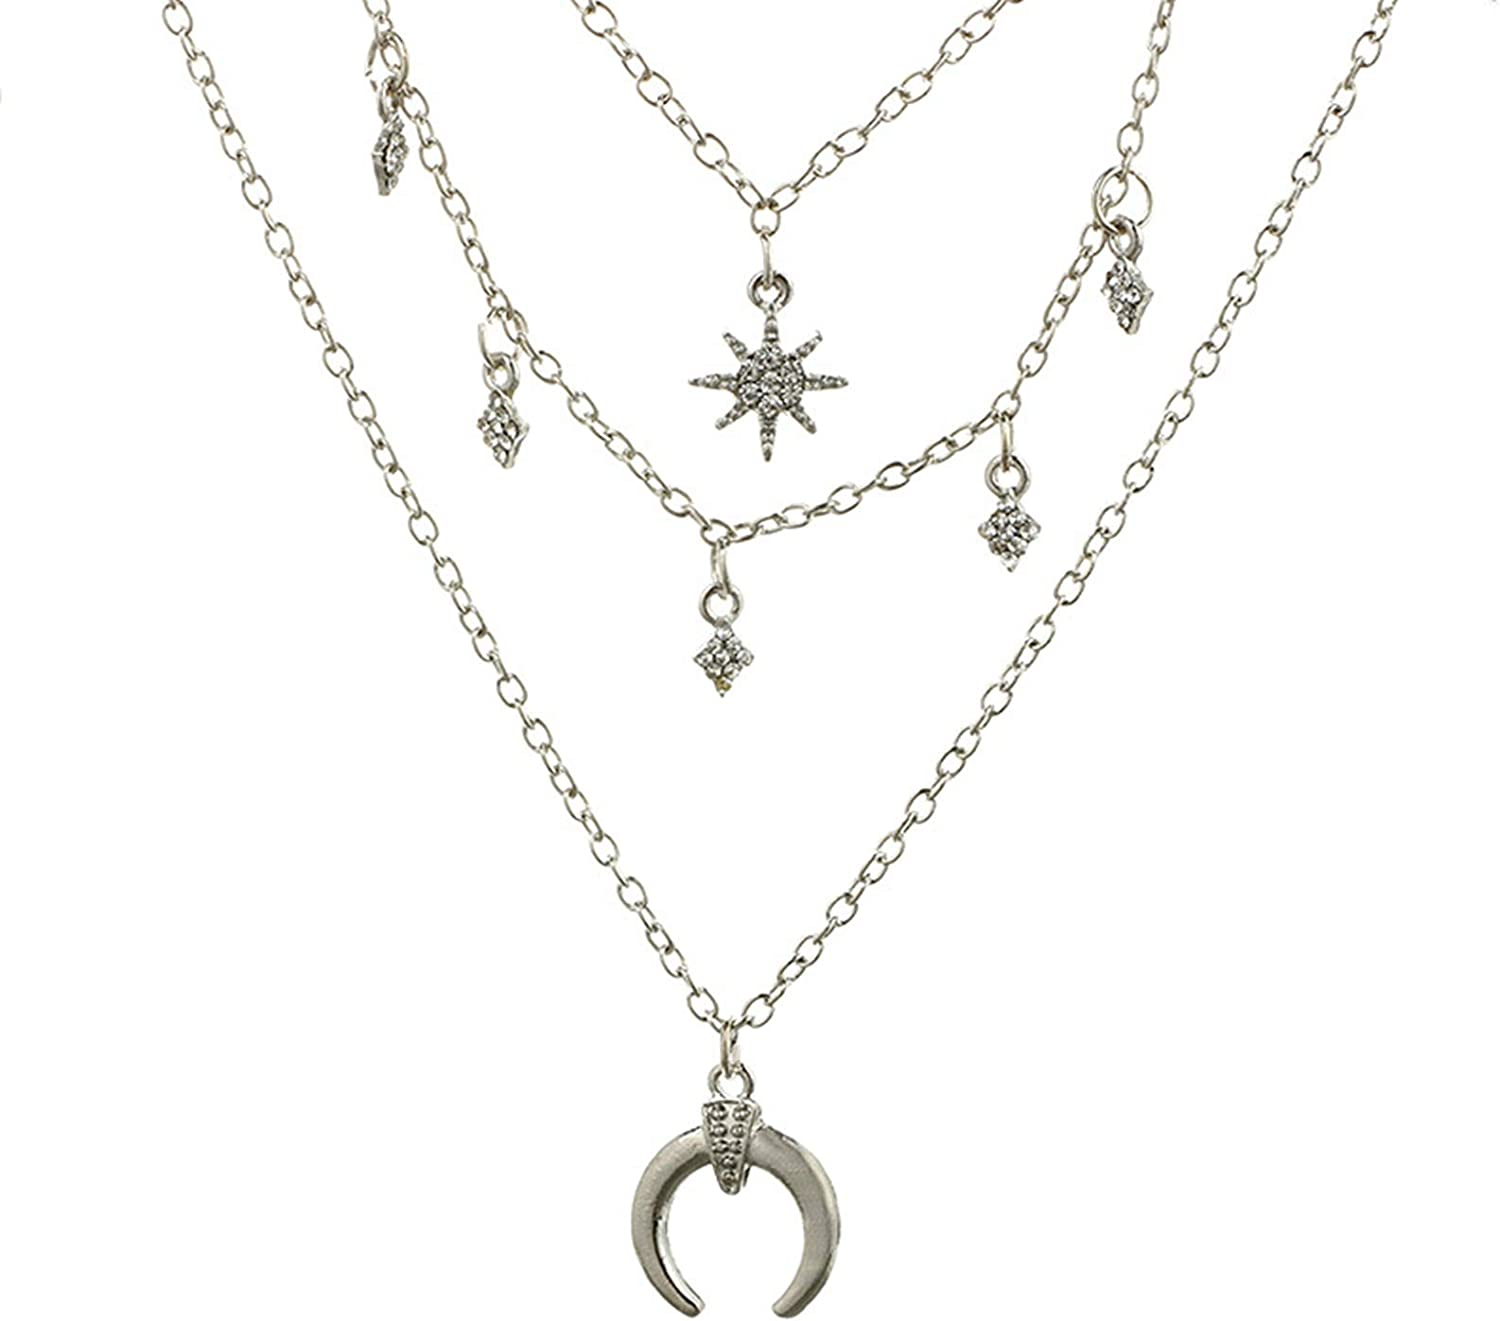 AMDXD Jewelry Silver Plated Womens Necklace Fashion Geometric Pendant Necklace